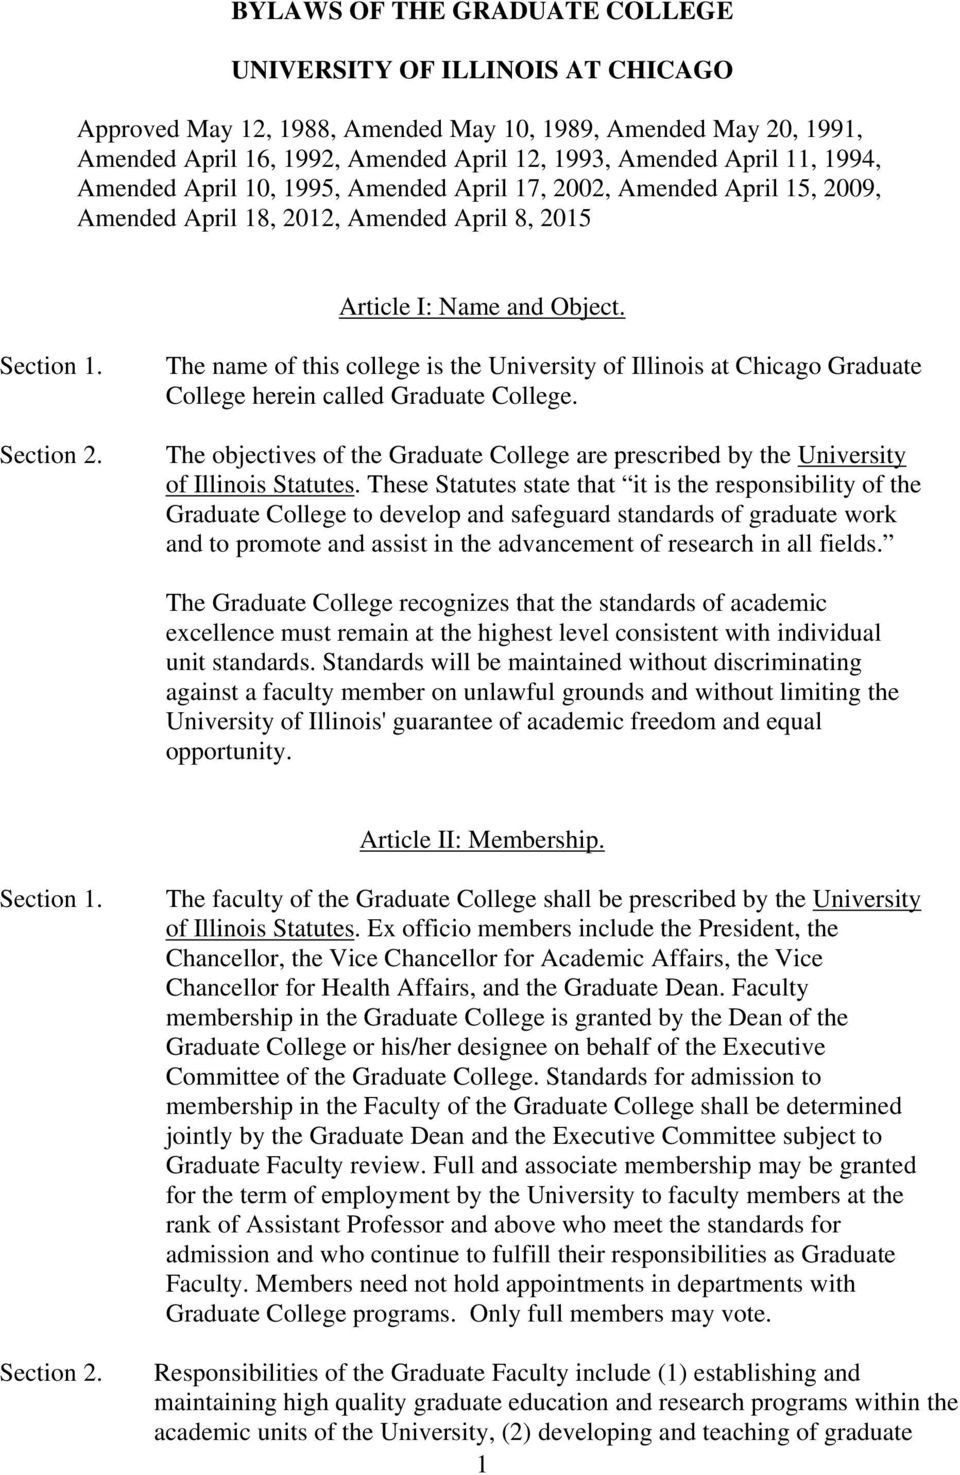 The name of this college is the University of Illinois at Chicago Graduate College herein called Graduate College.